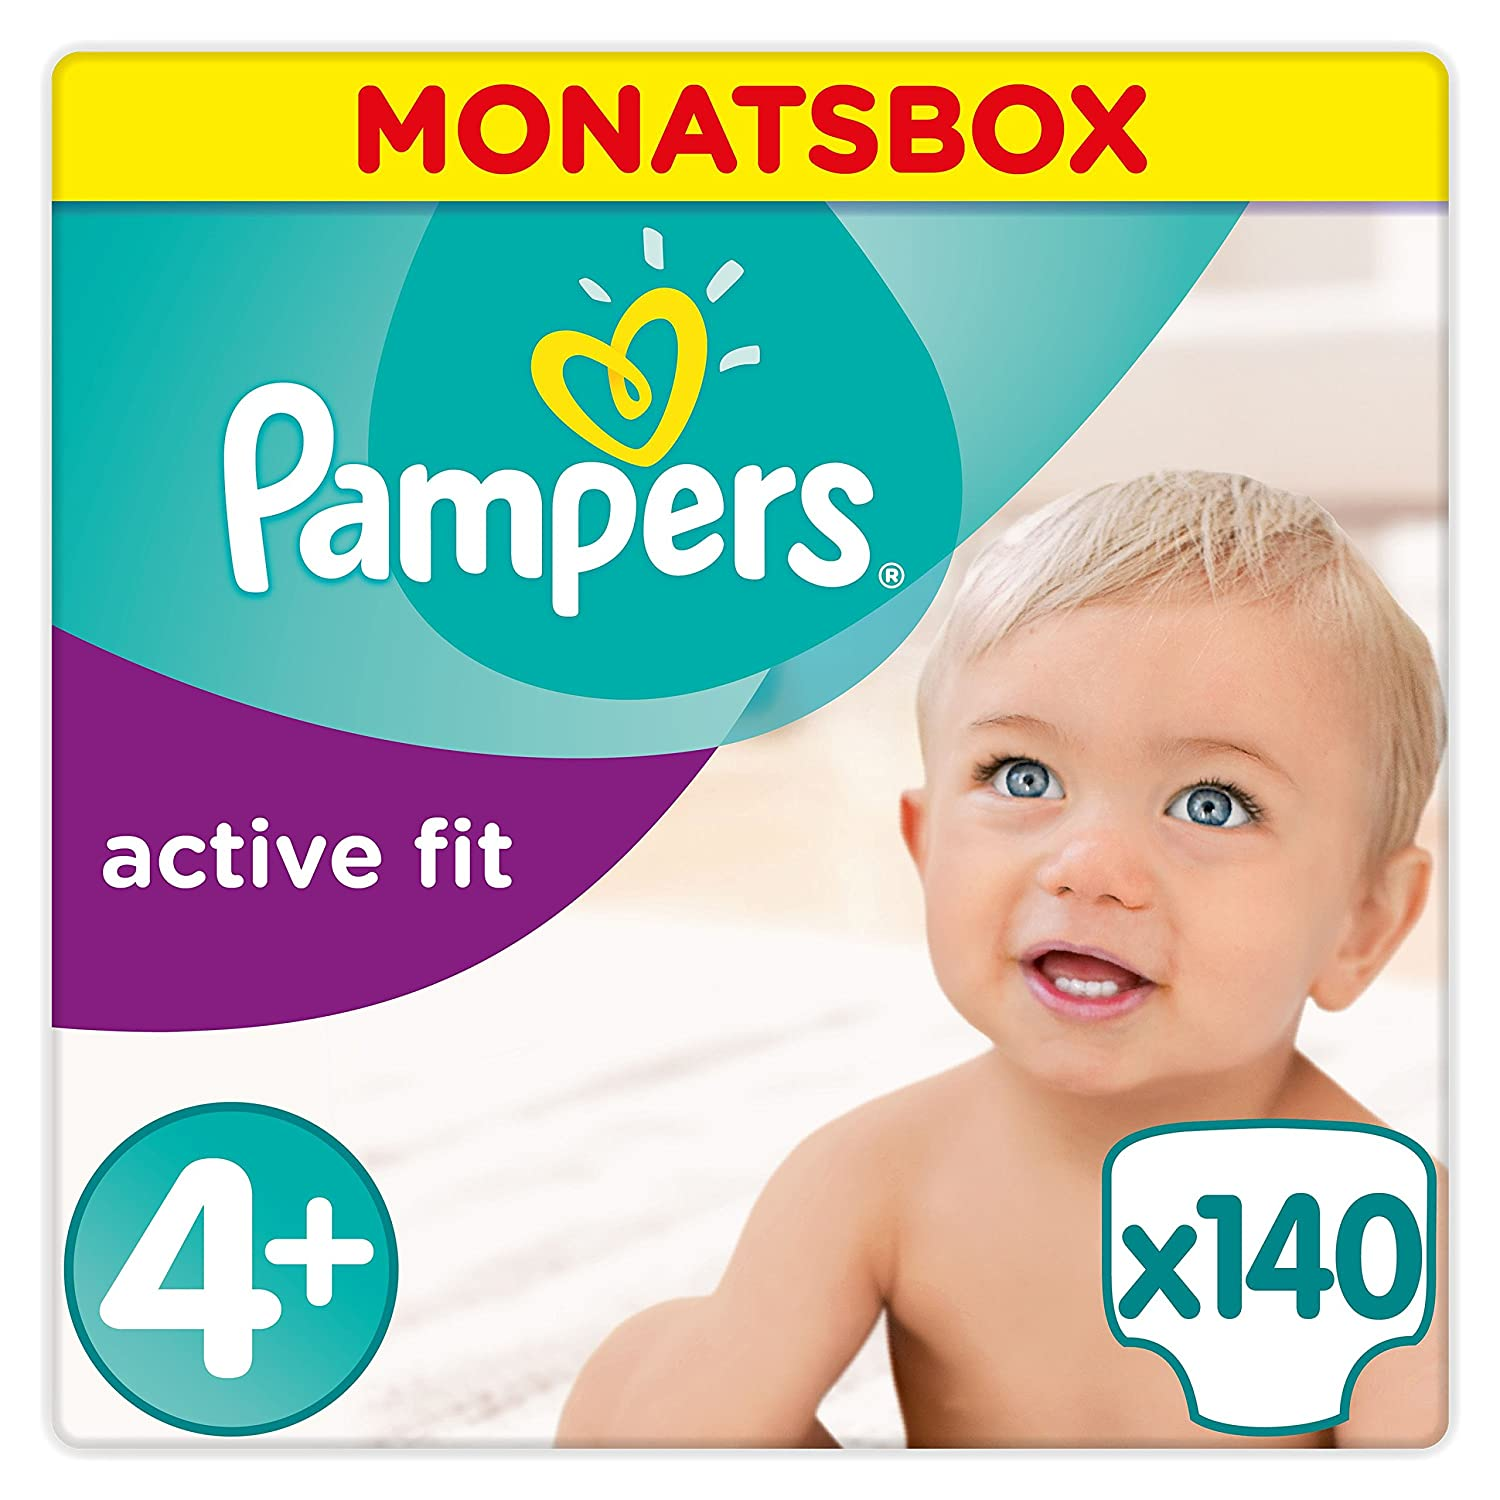 Pampers Active Fit Windeln, Gr.4+, Maxi Plus 9-18kg, Monatsbox, 1er Pack (1 x 140 Stück) 81395086 B00AF9R36U